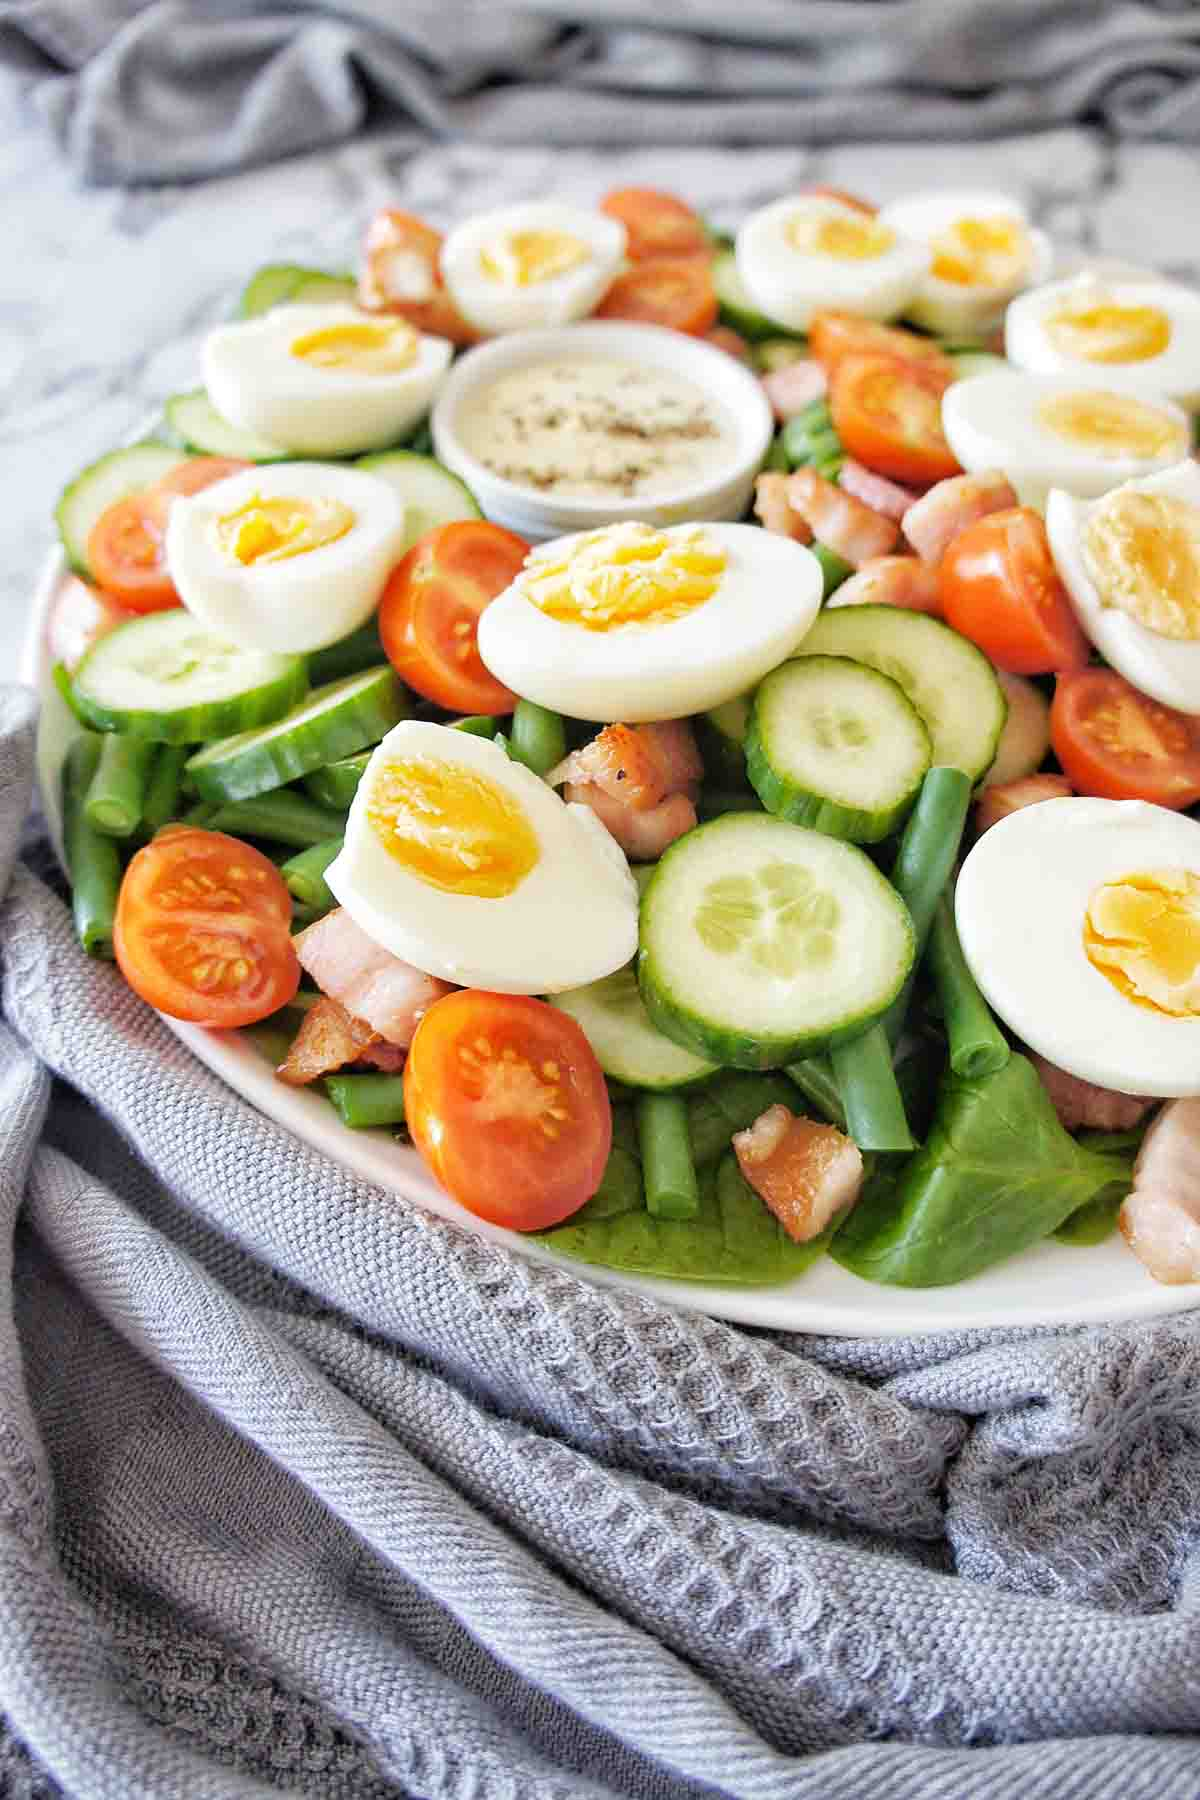 Salad with egg on top on a white plate